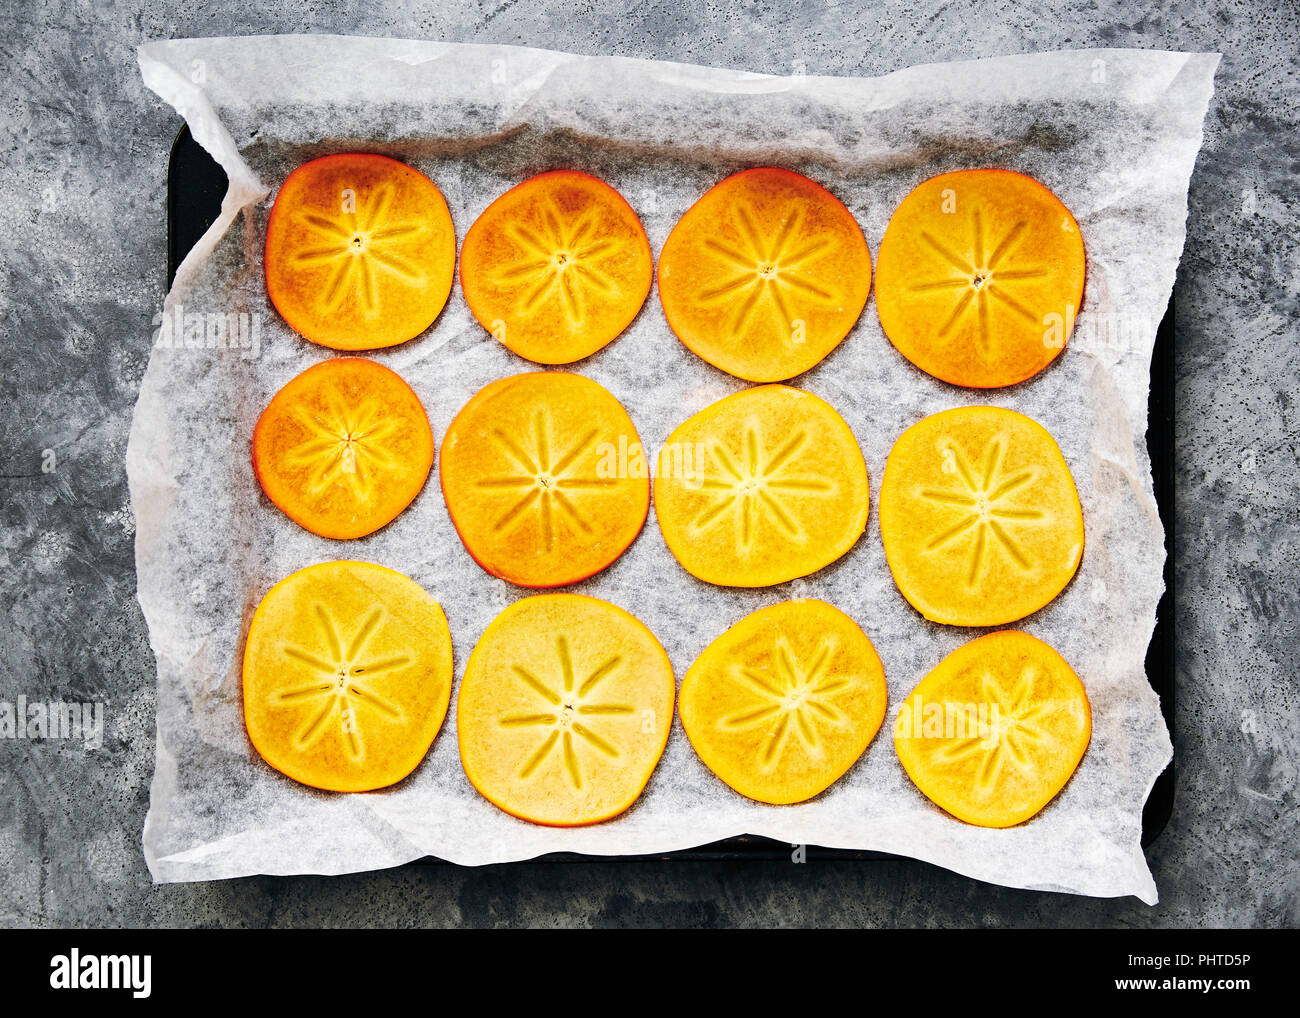 Freshly cut persimmon: bake in the oven to make dried persimmon flowers to decorate a cake. - Stock Image